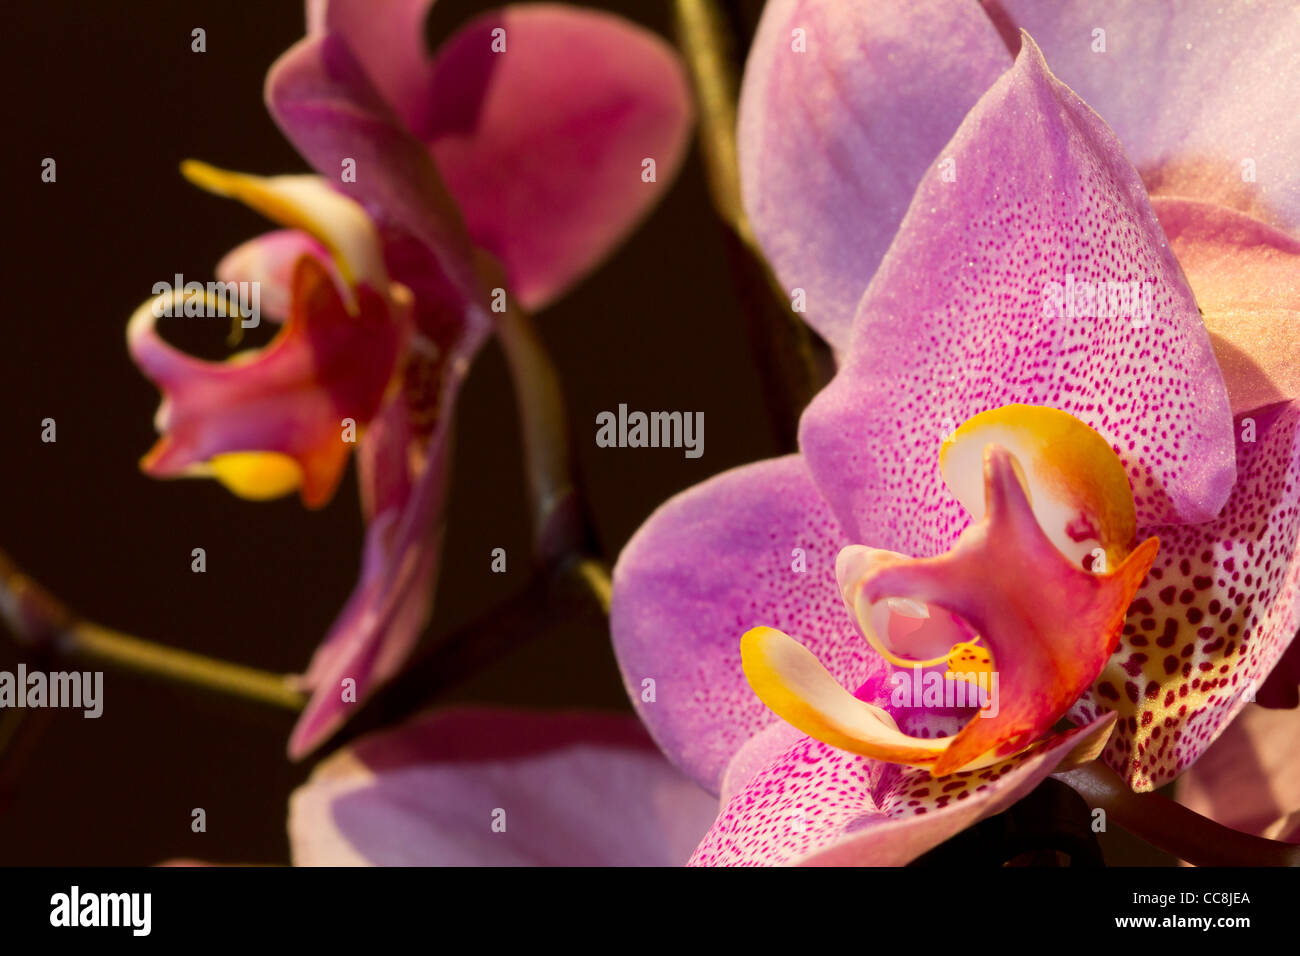 A pink Orchid or Orchidaceae - Stock Image